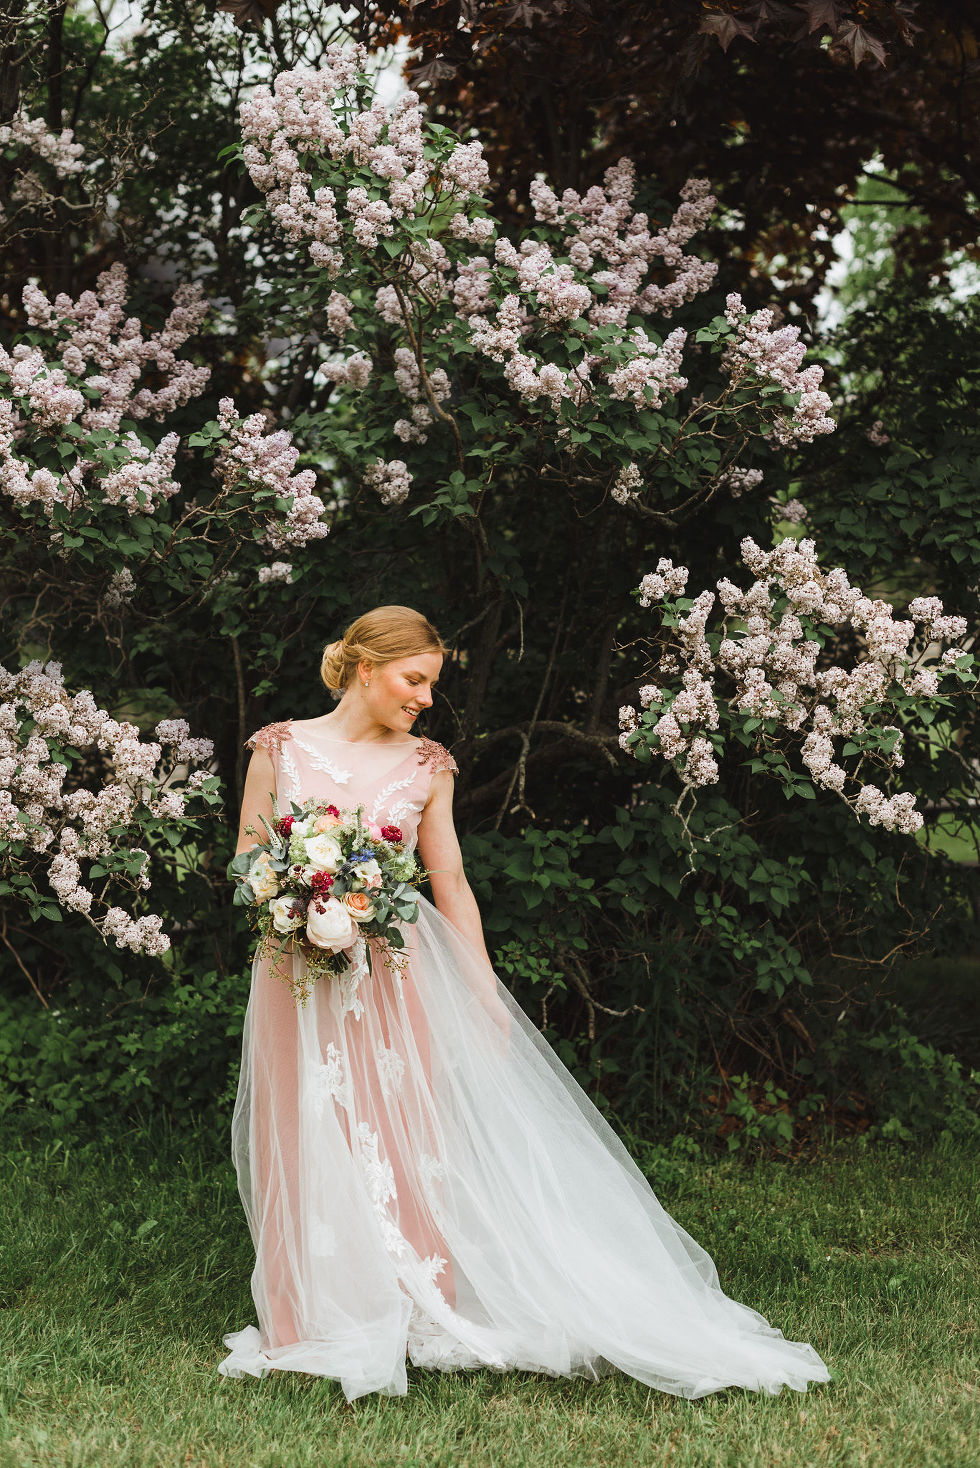 bride standing in front of lilac bushes holding a floral bouquet and looking down at her dress during her charming southern style wedding at Ruthven National Historic Site near Hamilton